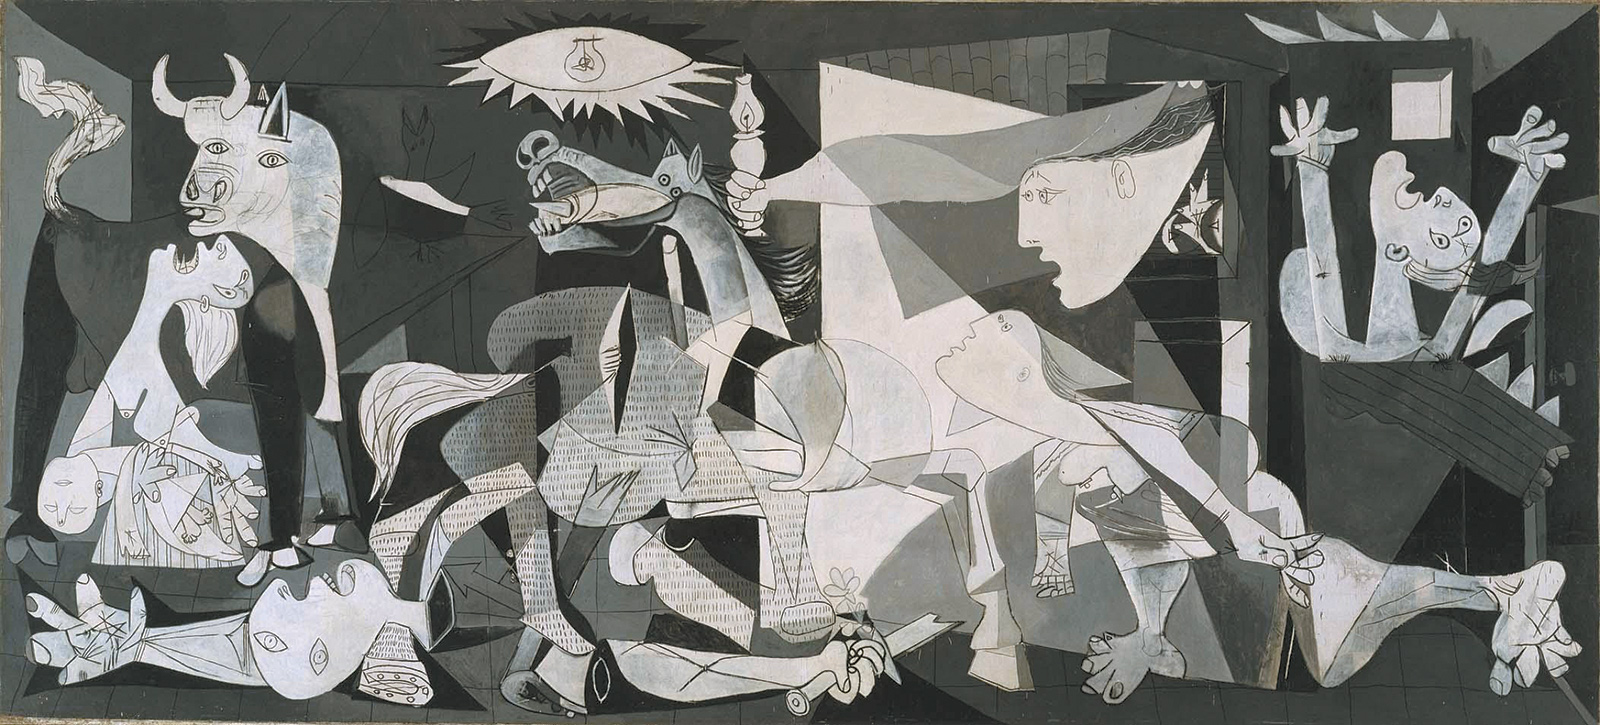 Pablo Picasso: Guernica, oil on canvas, May 1–June 4, 1937